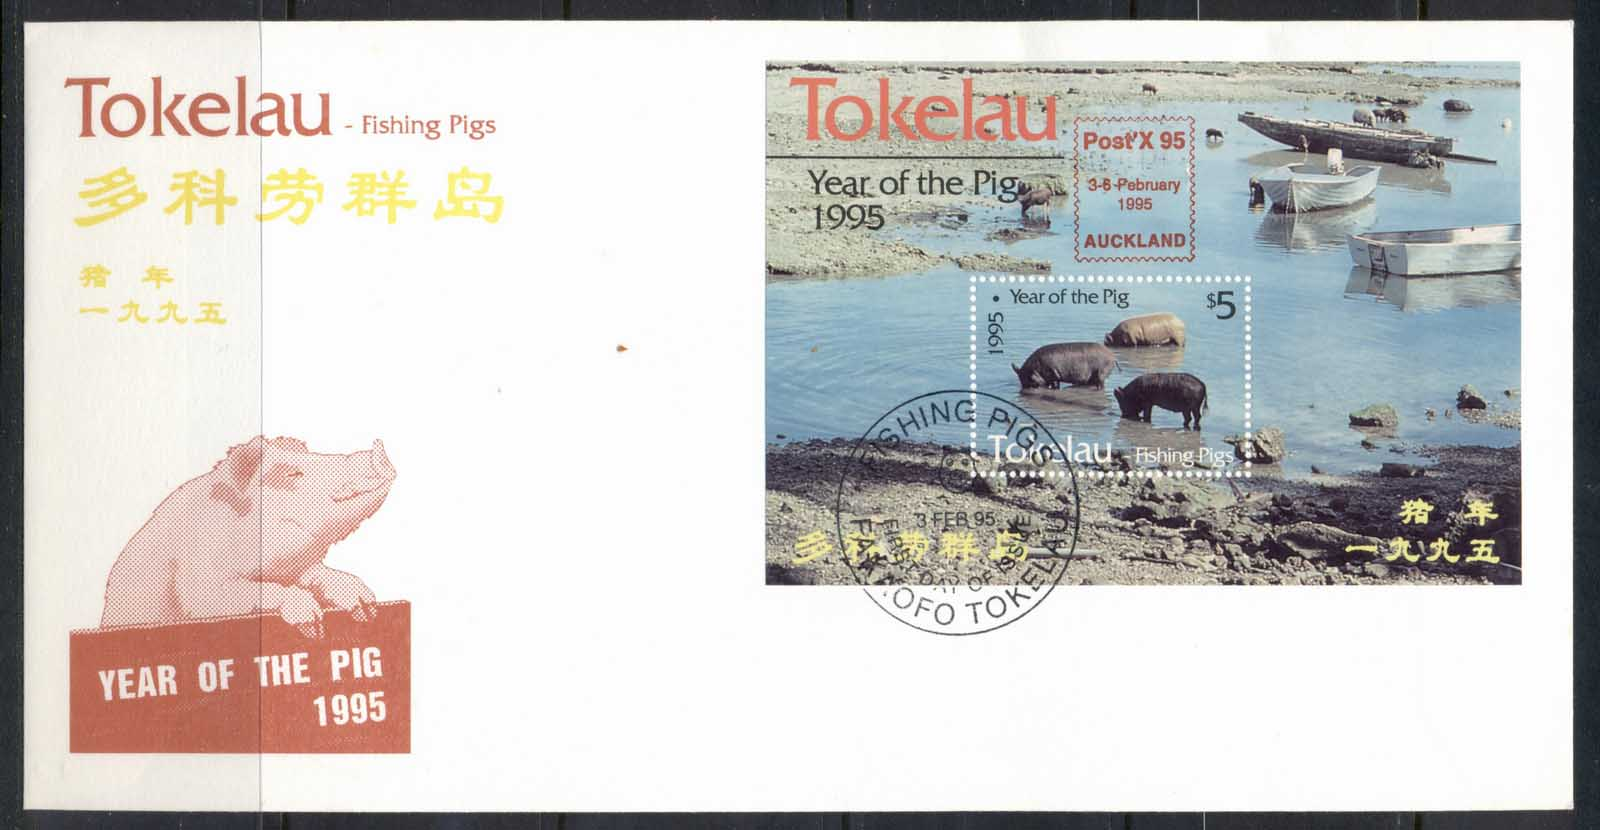 Tokelau 1995 Year of the Pig Auckland MS FDC